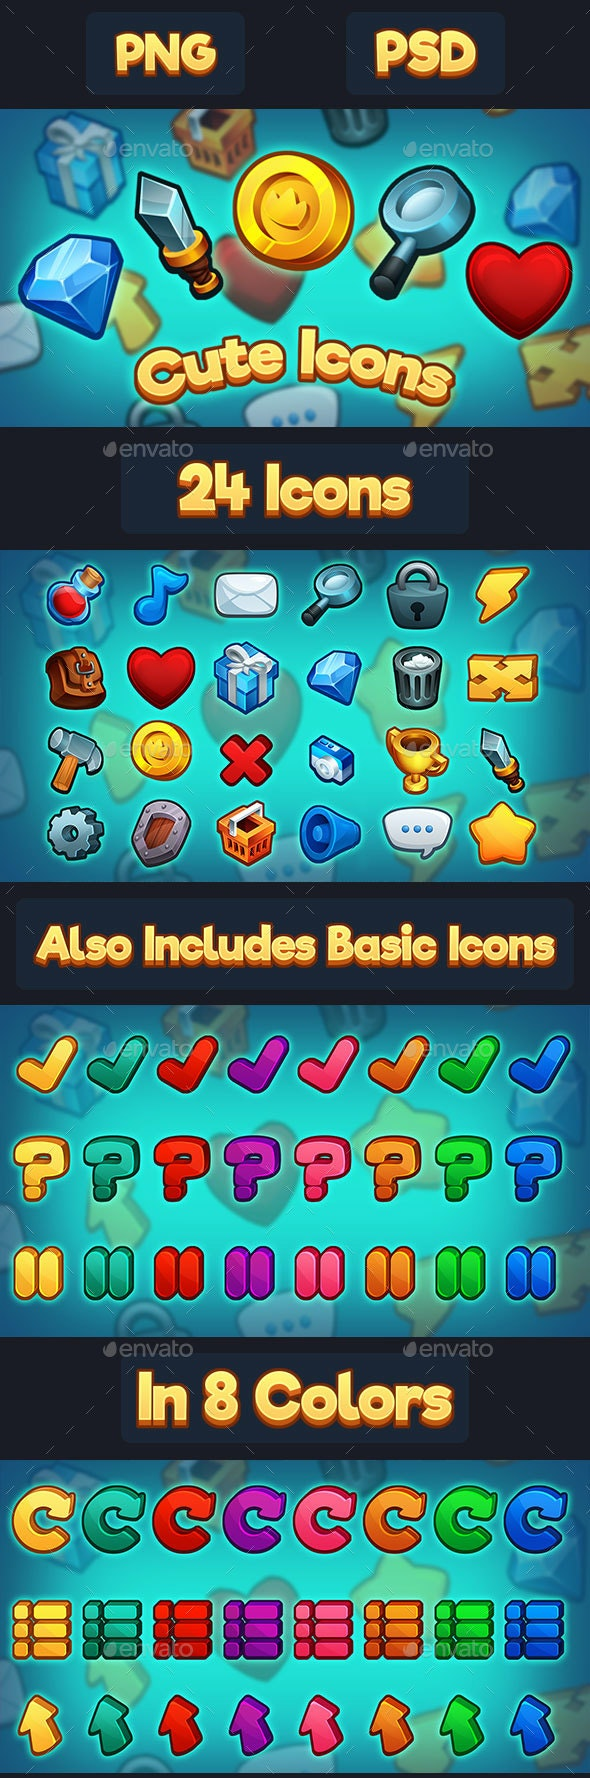 Game UI Icons by ArtByKandles | GraphicRiver